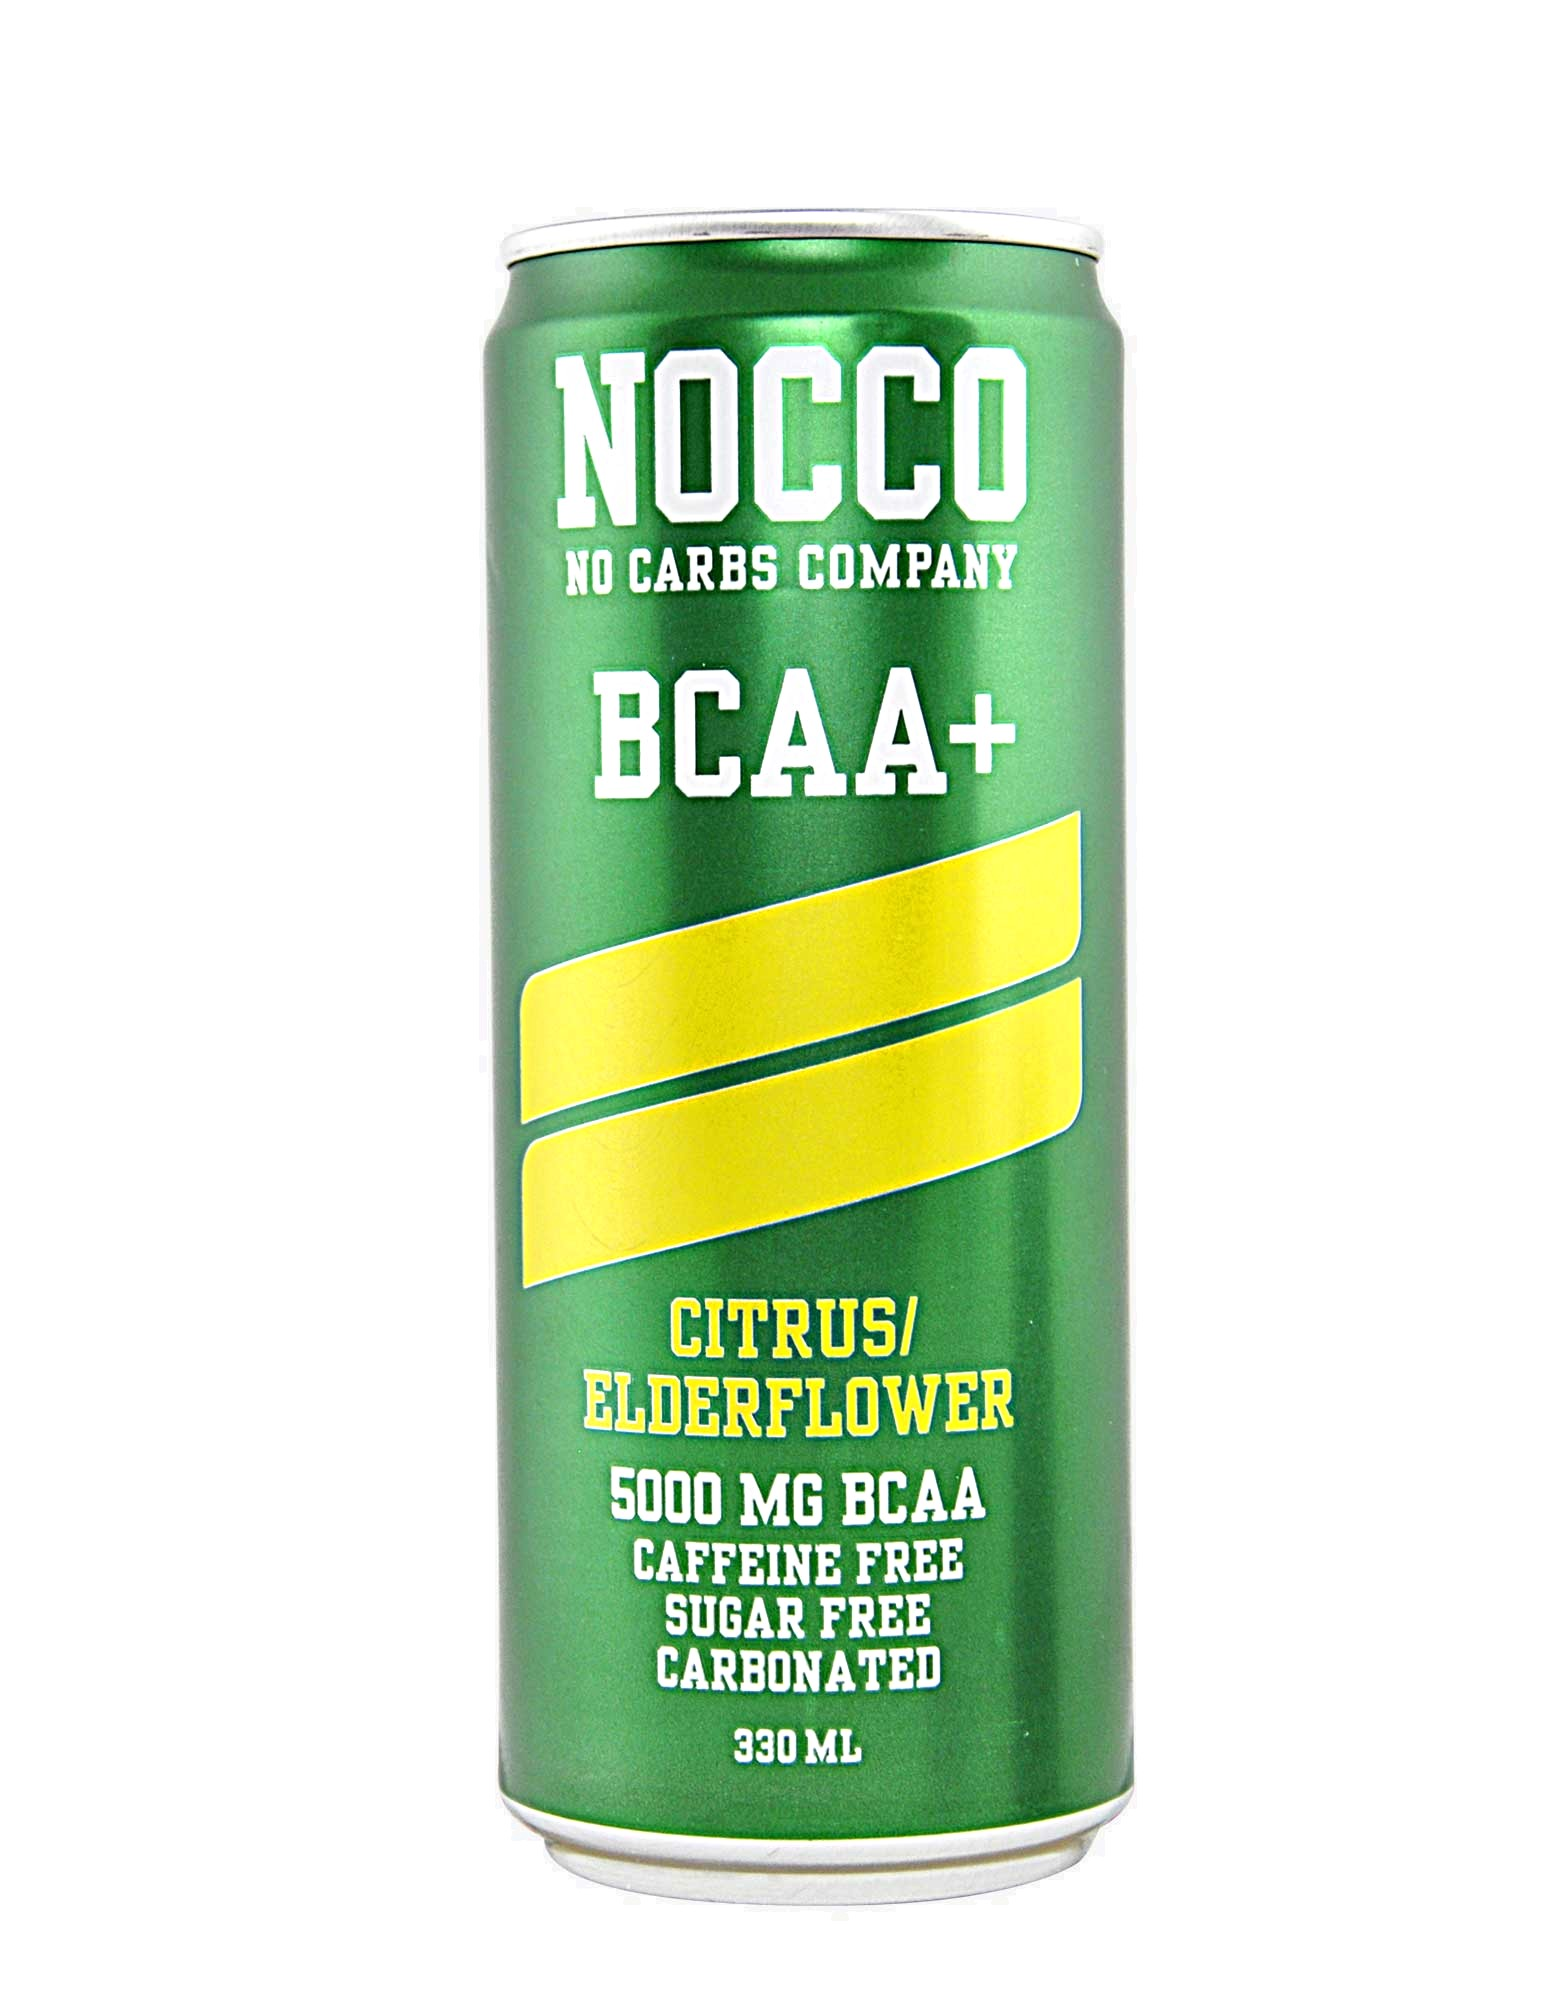 Nocco BCAA by NOCCO (caffeine free - 1 can of 330ml) £ 1,69